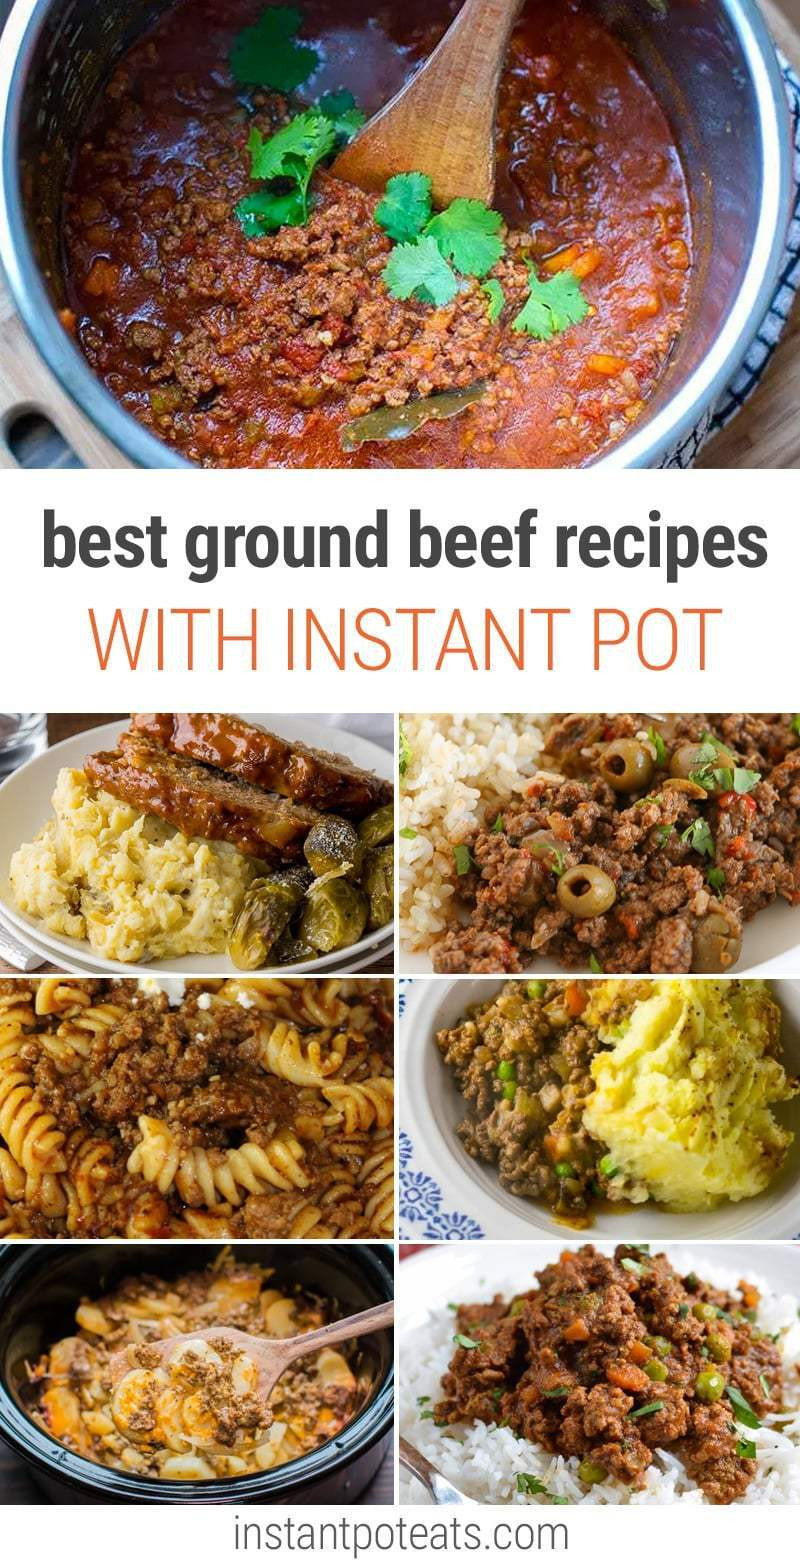 Best Ground Beef Recipes  The BEST Instant Pot Ground Beef Recipes You Will Love